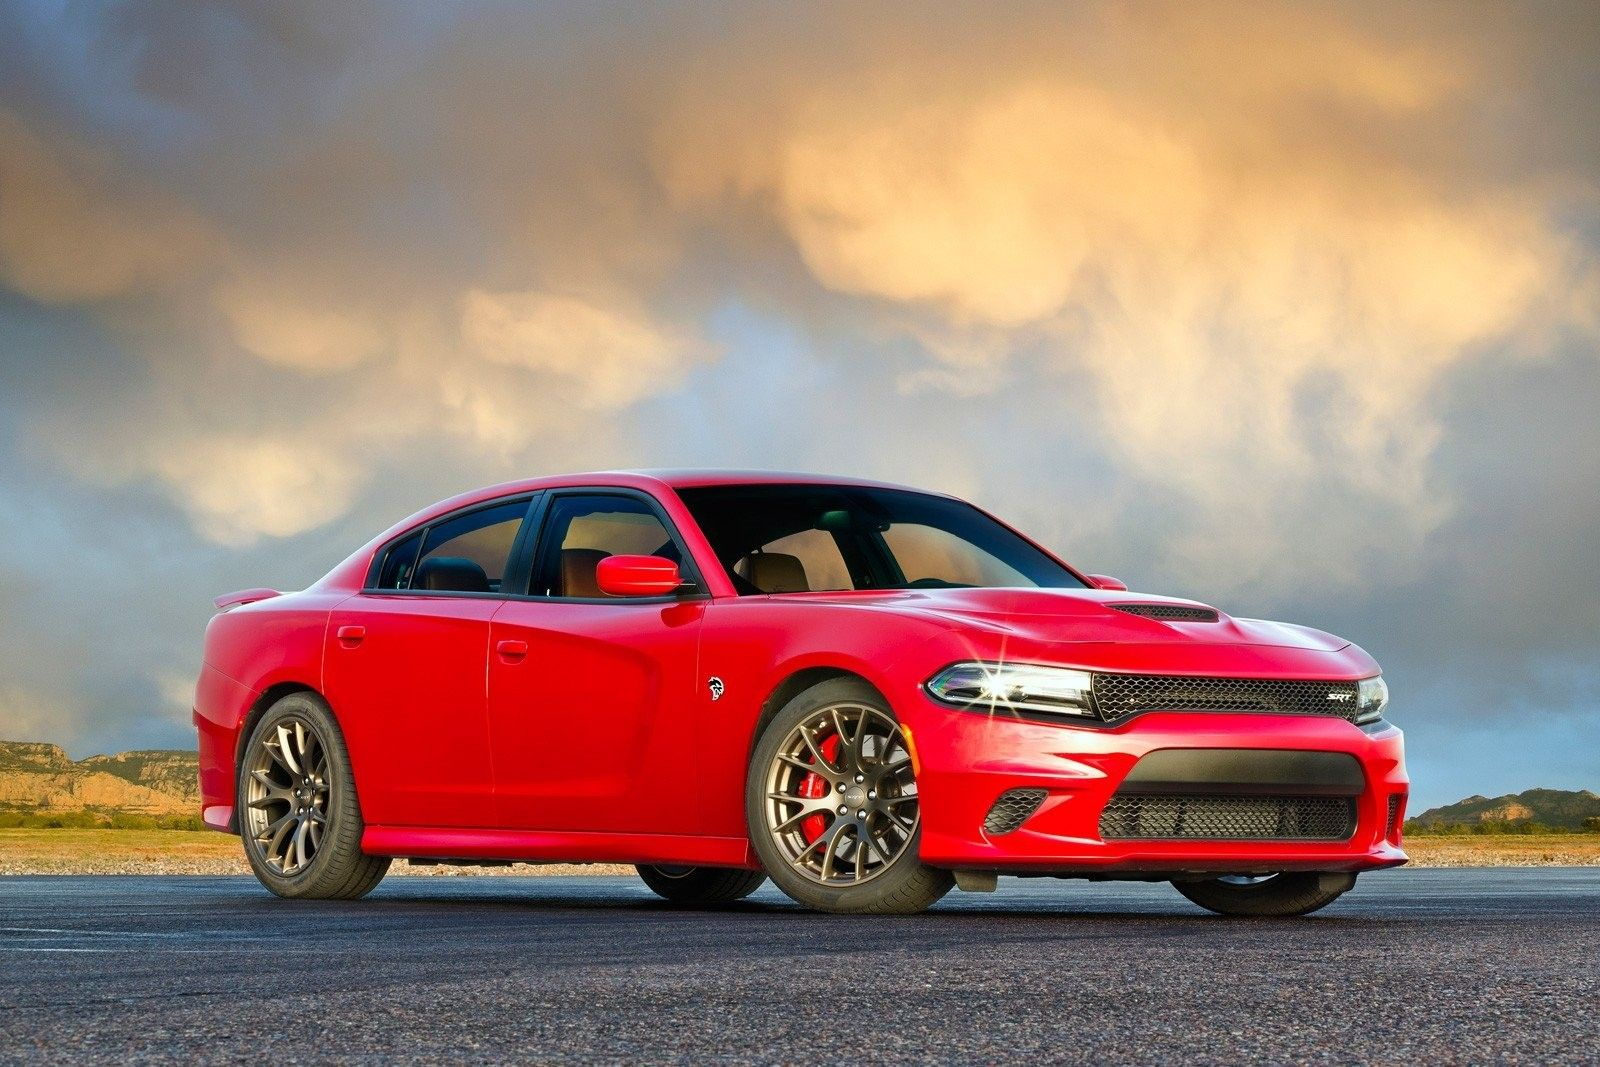 Dodge Charger Horsepower The 2 Common Stereotypes When It Comes To Dodge Charger Horsepower In 2021 Dodge Charger 1969 Dodge Charger Dodge